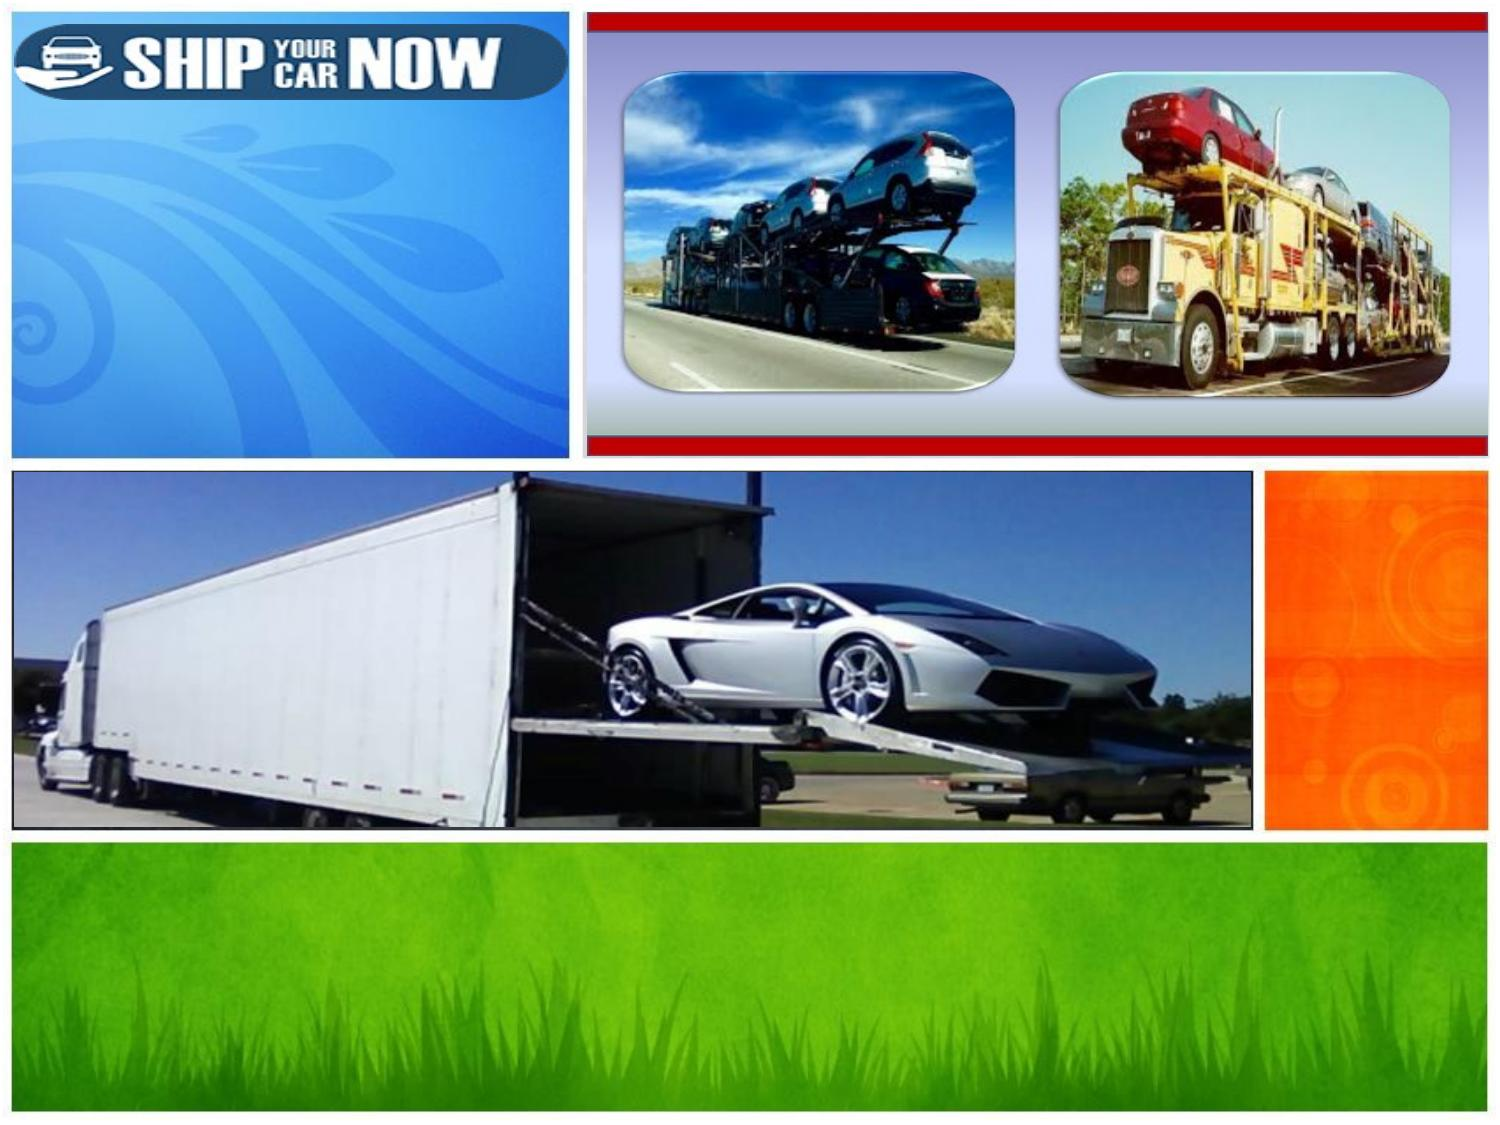 Ship My Car >> The Best Transportation Of Ship My Car By Ship Your Car Now